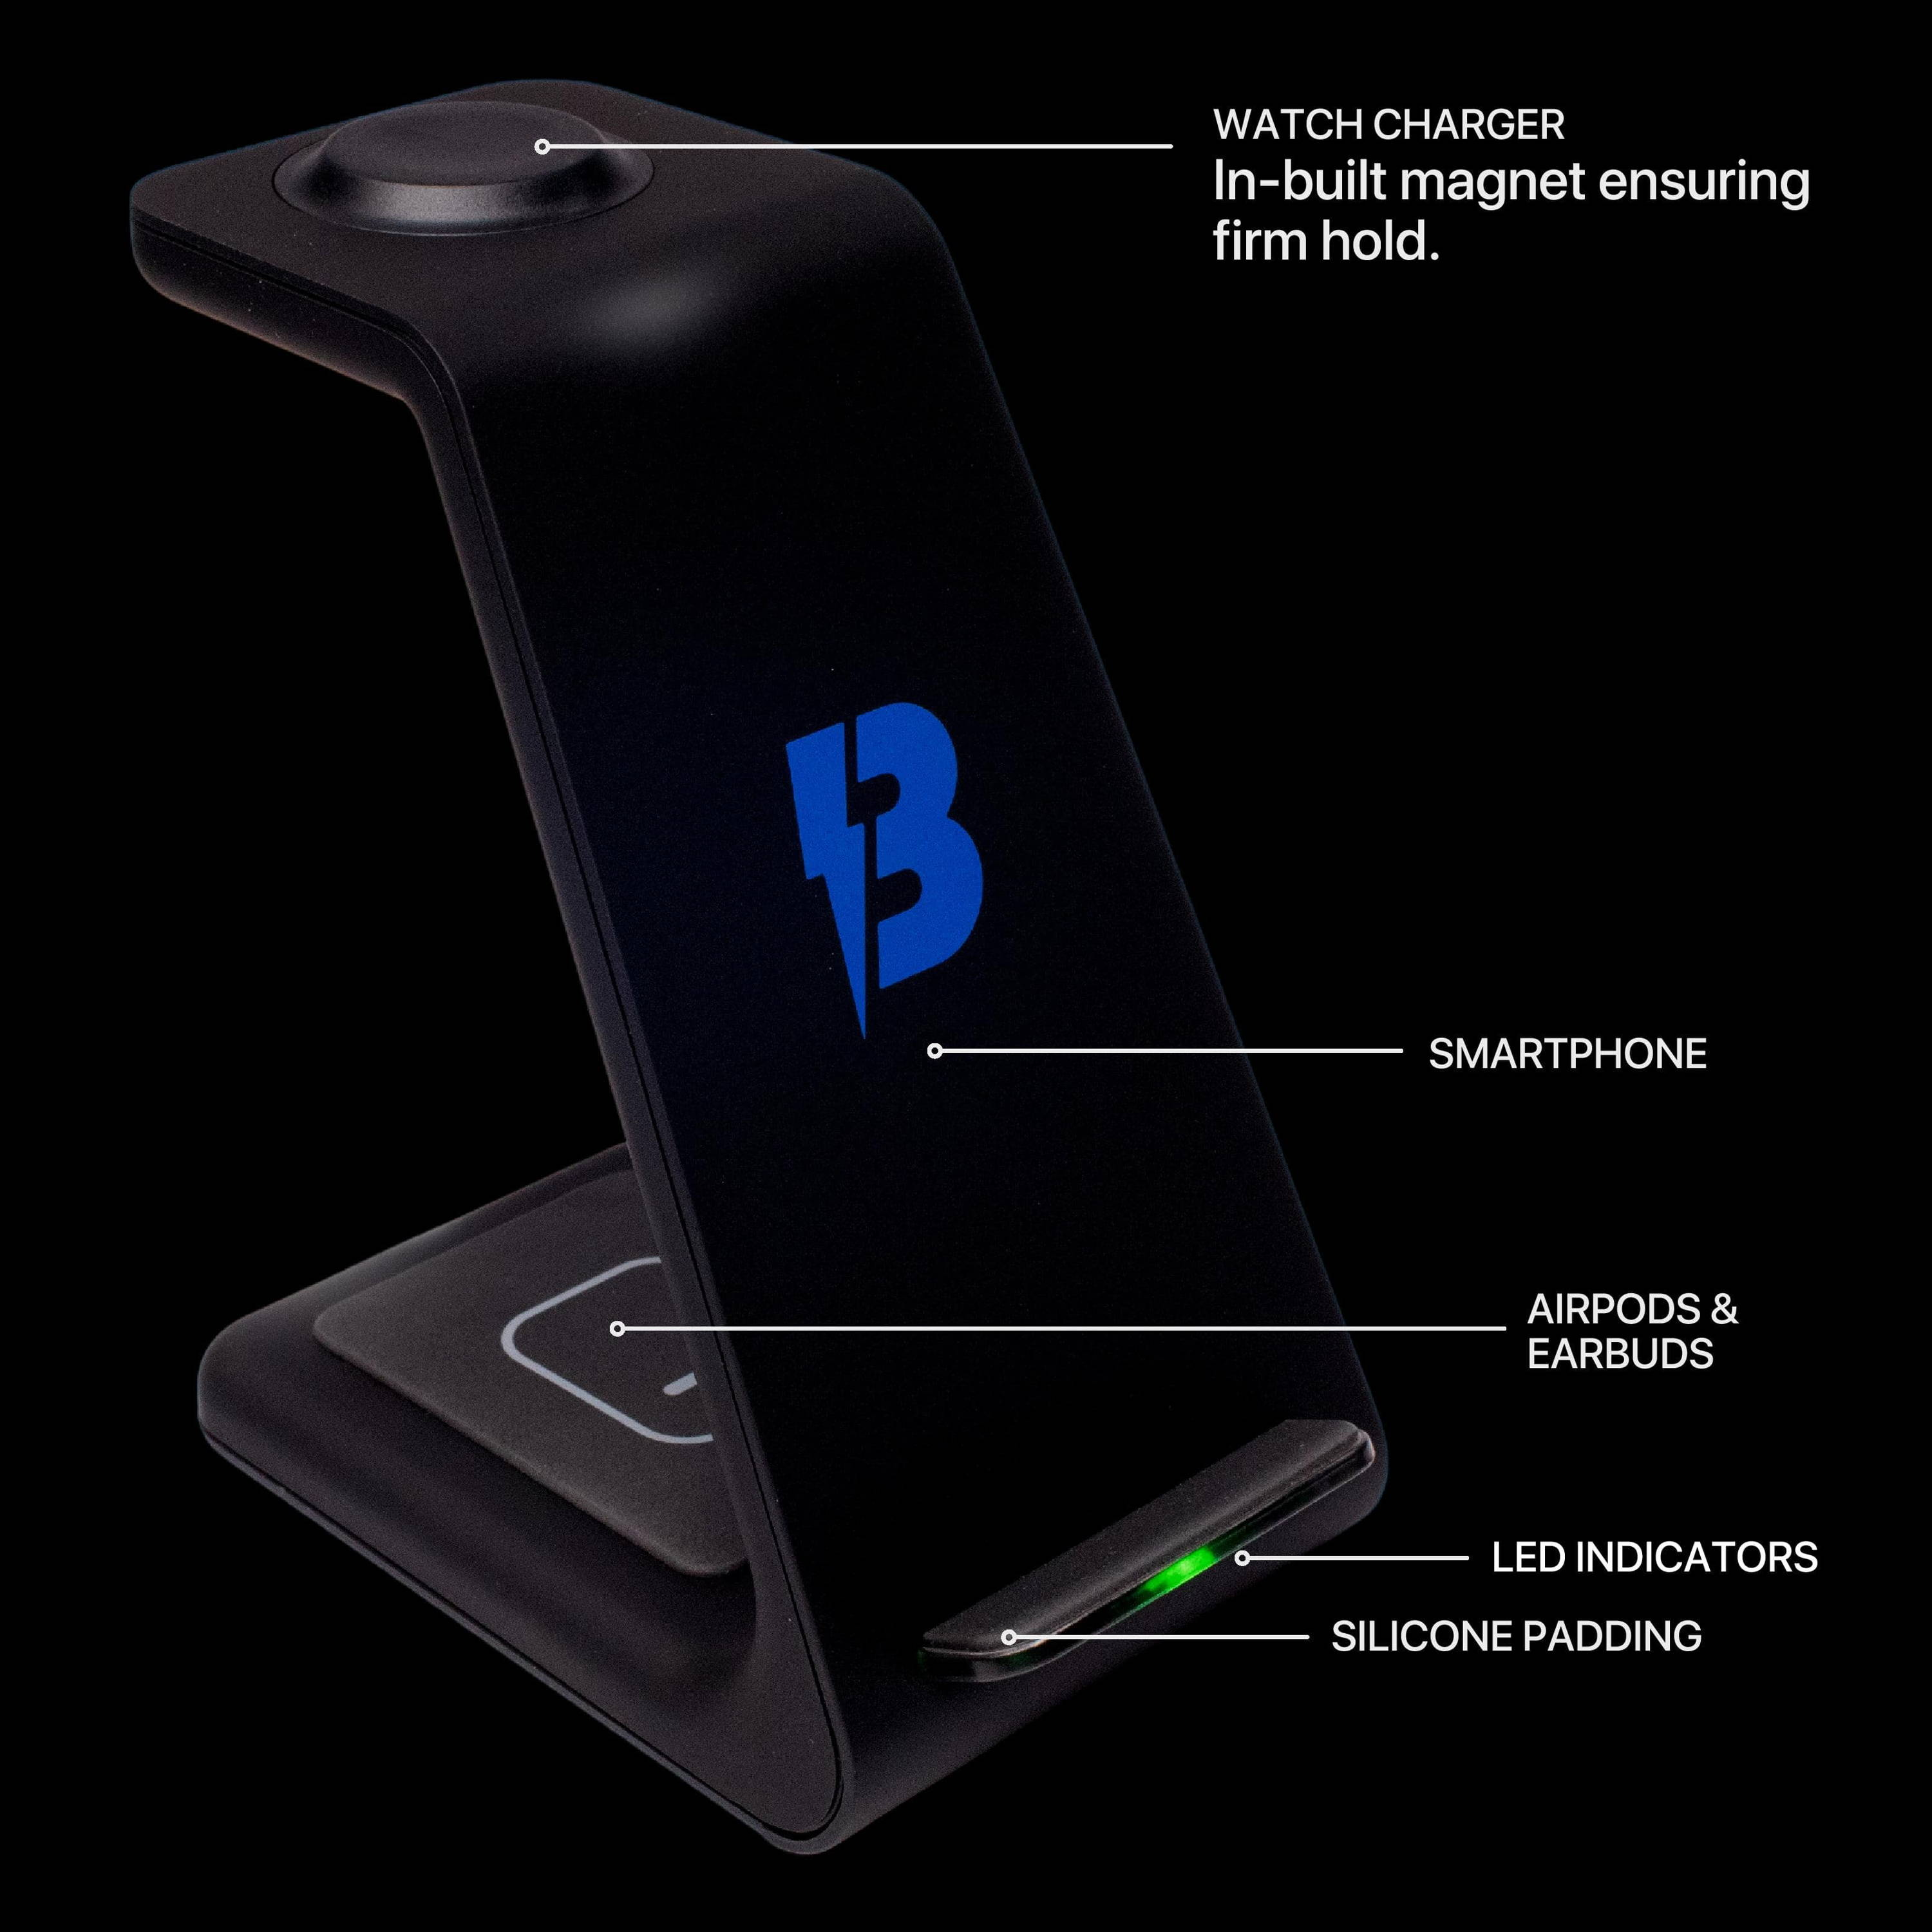 bolthome 3 in 1 wireless dock diagram midnight black color